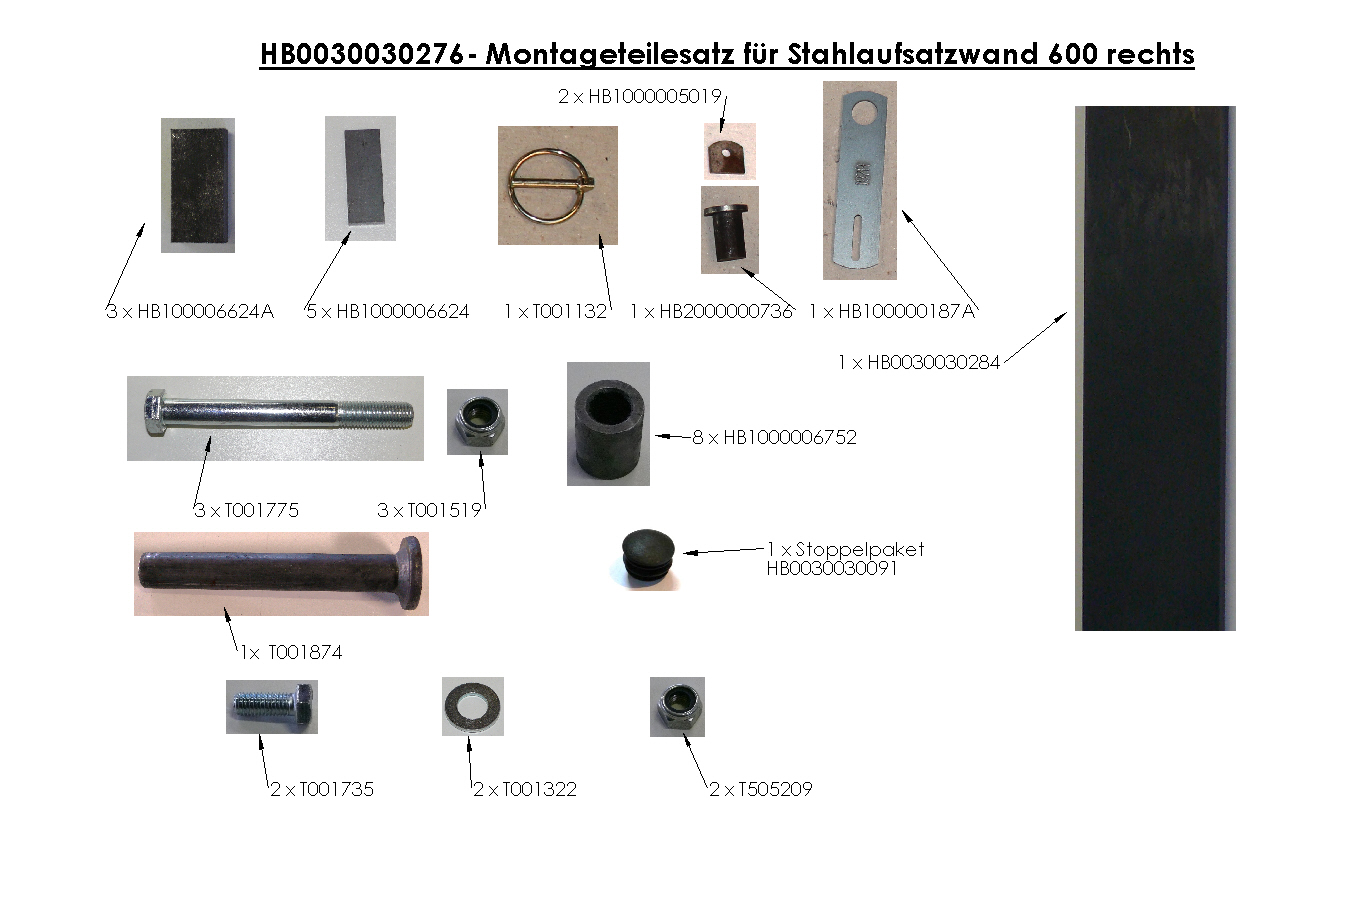 Brantner Kipper und Anhänger - assembly kit for steel attachment wall 600 right